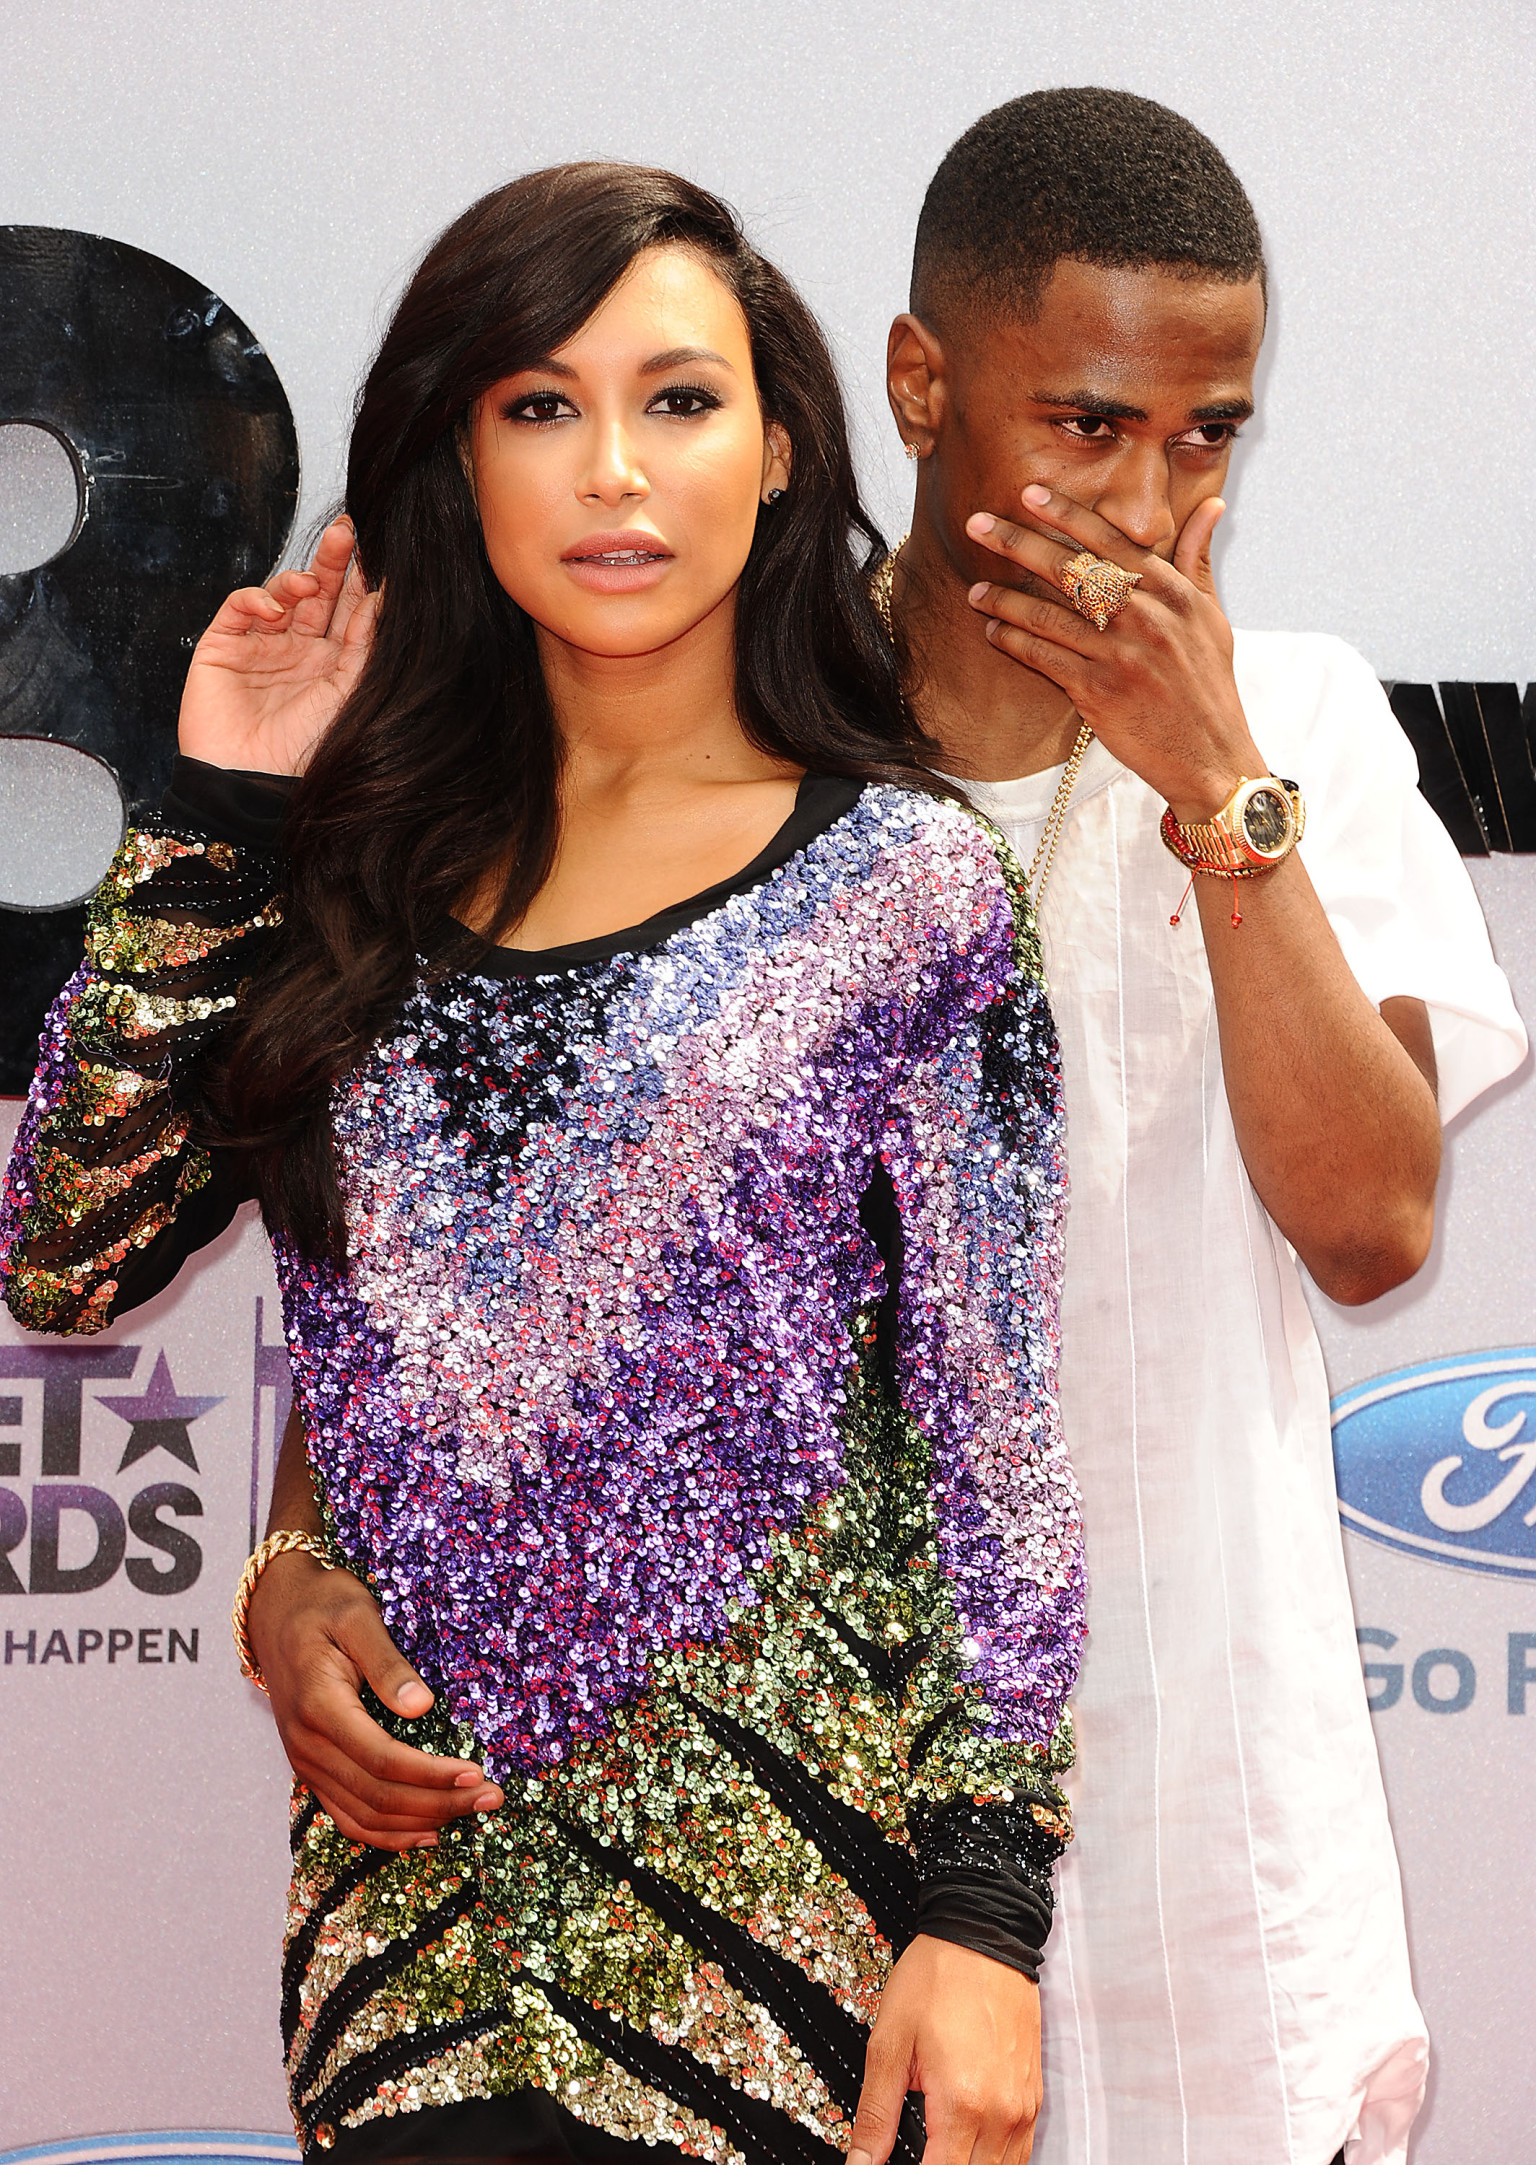 Jealousy Got The Best Of Them: Big Sean Calls Off Engagement With Naya Rivera